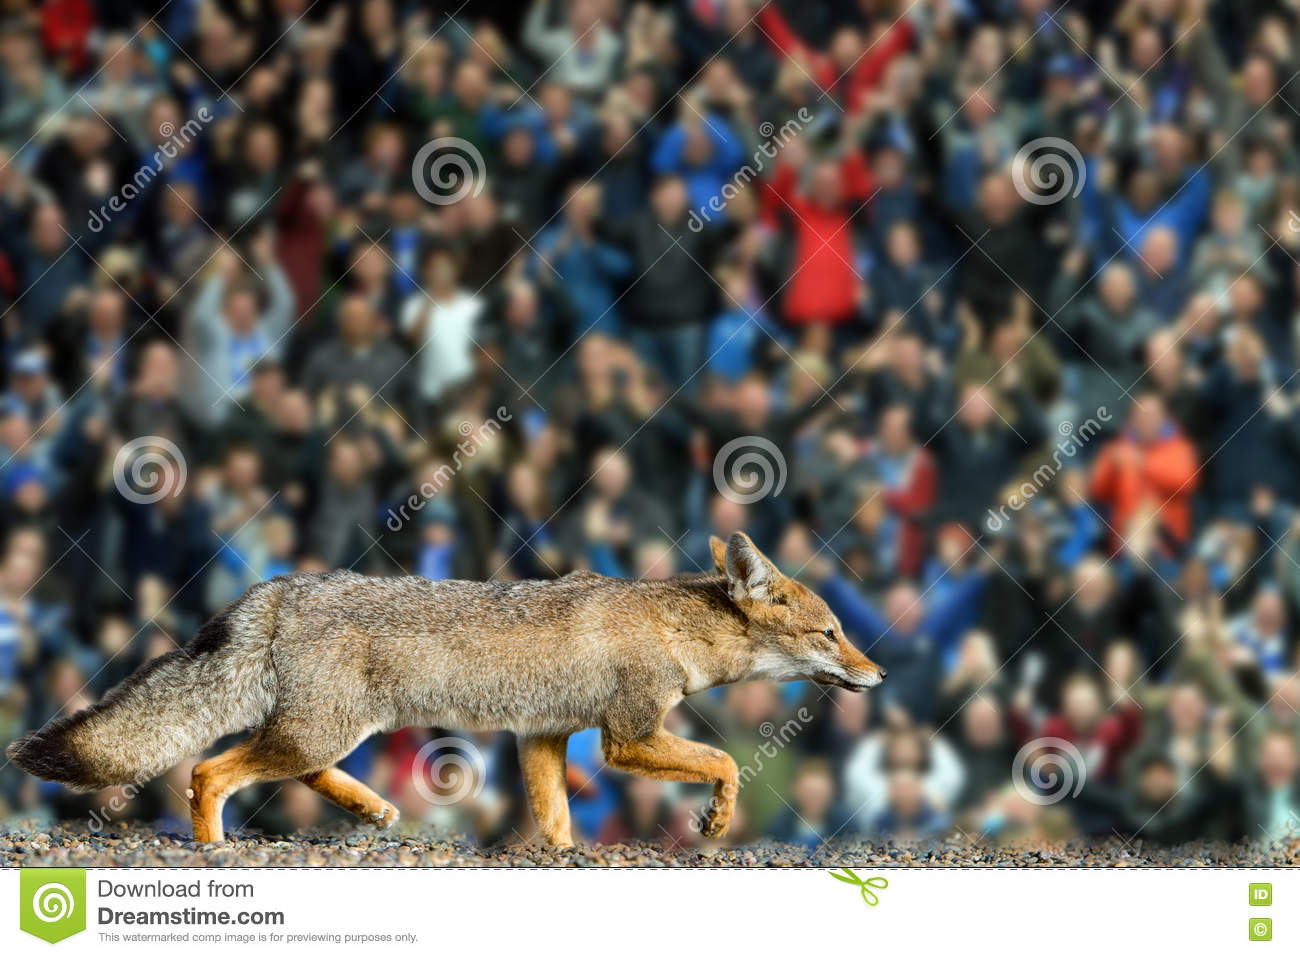 Real Fox Leicester City Football Club Wallpaper Stock